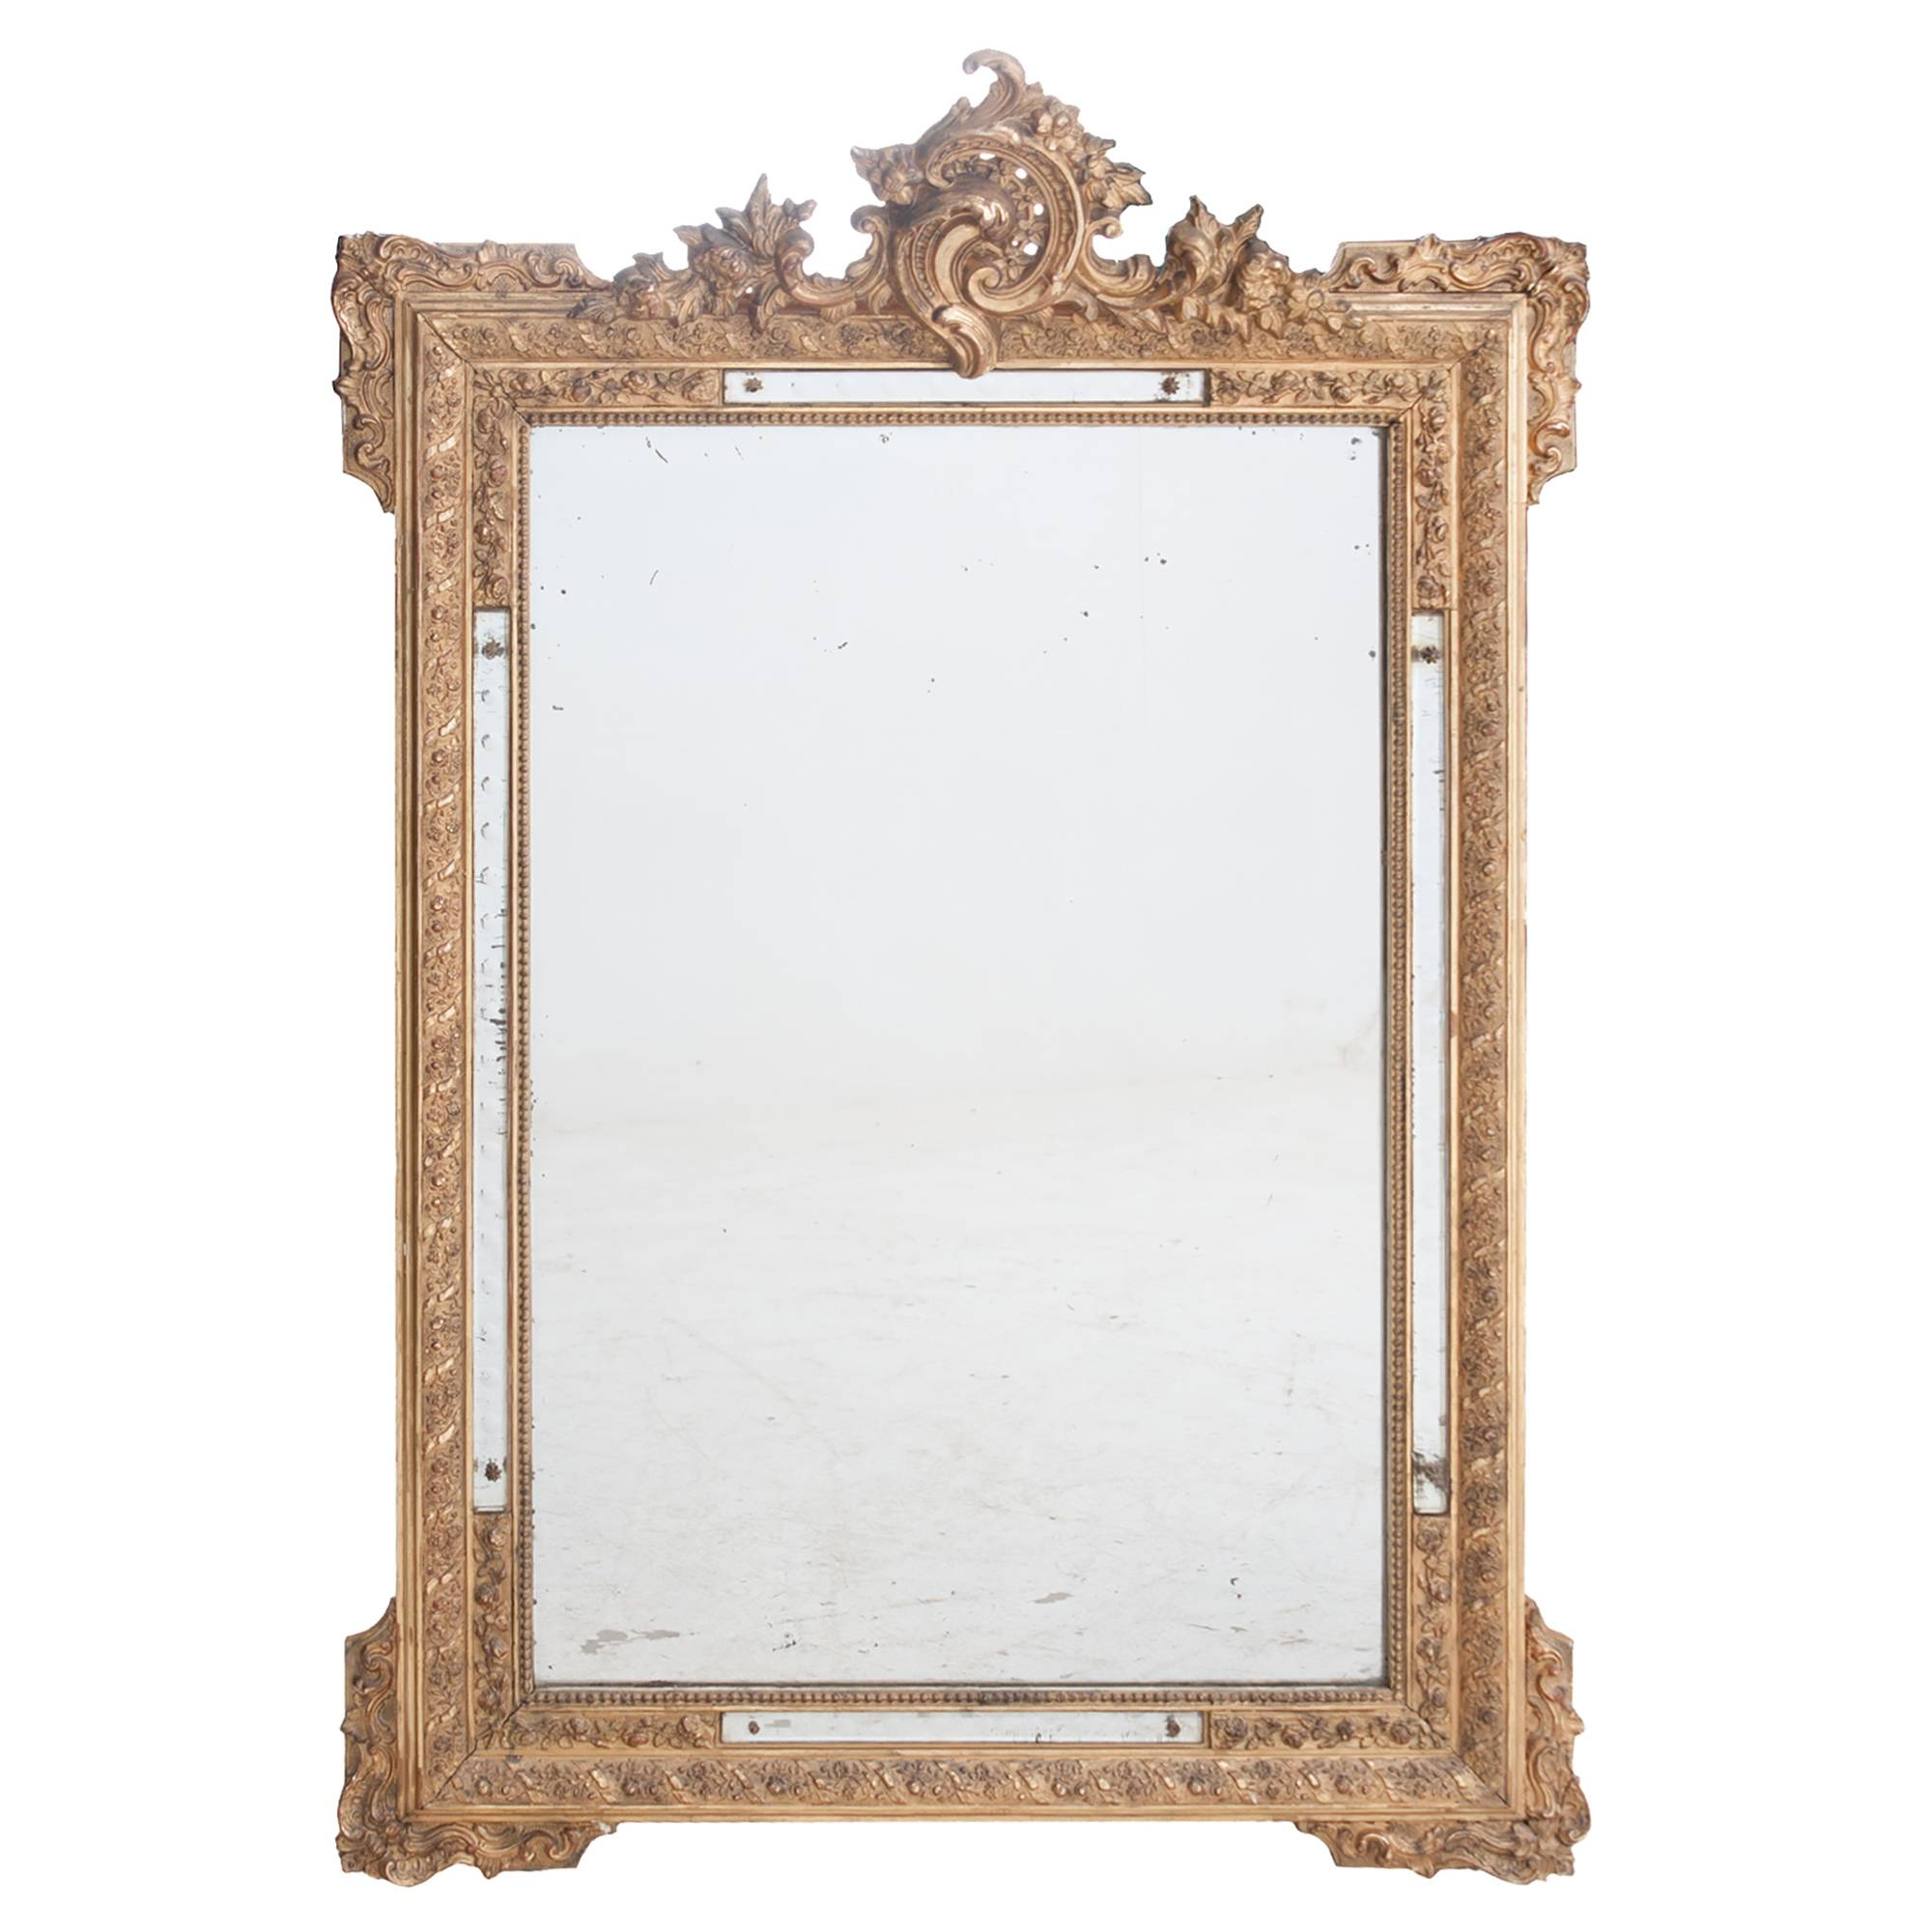 French 19Th Century Rococo Style Gilt Mirror With Applique Mirror with regard to French Gilt Mirrors (Image 8 of 15)